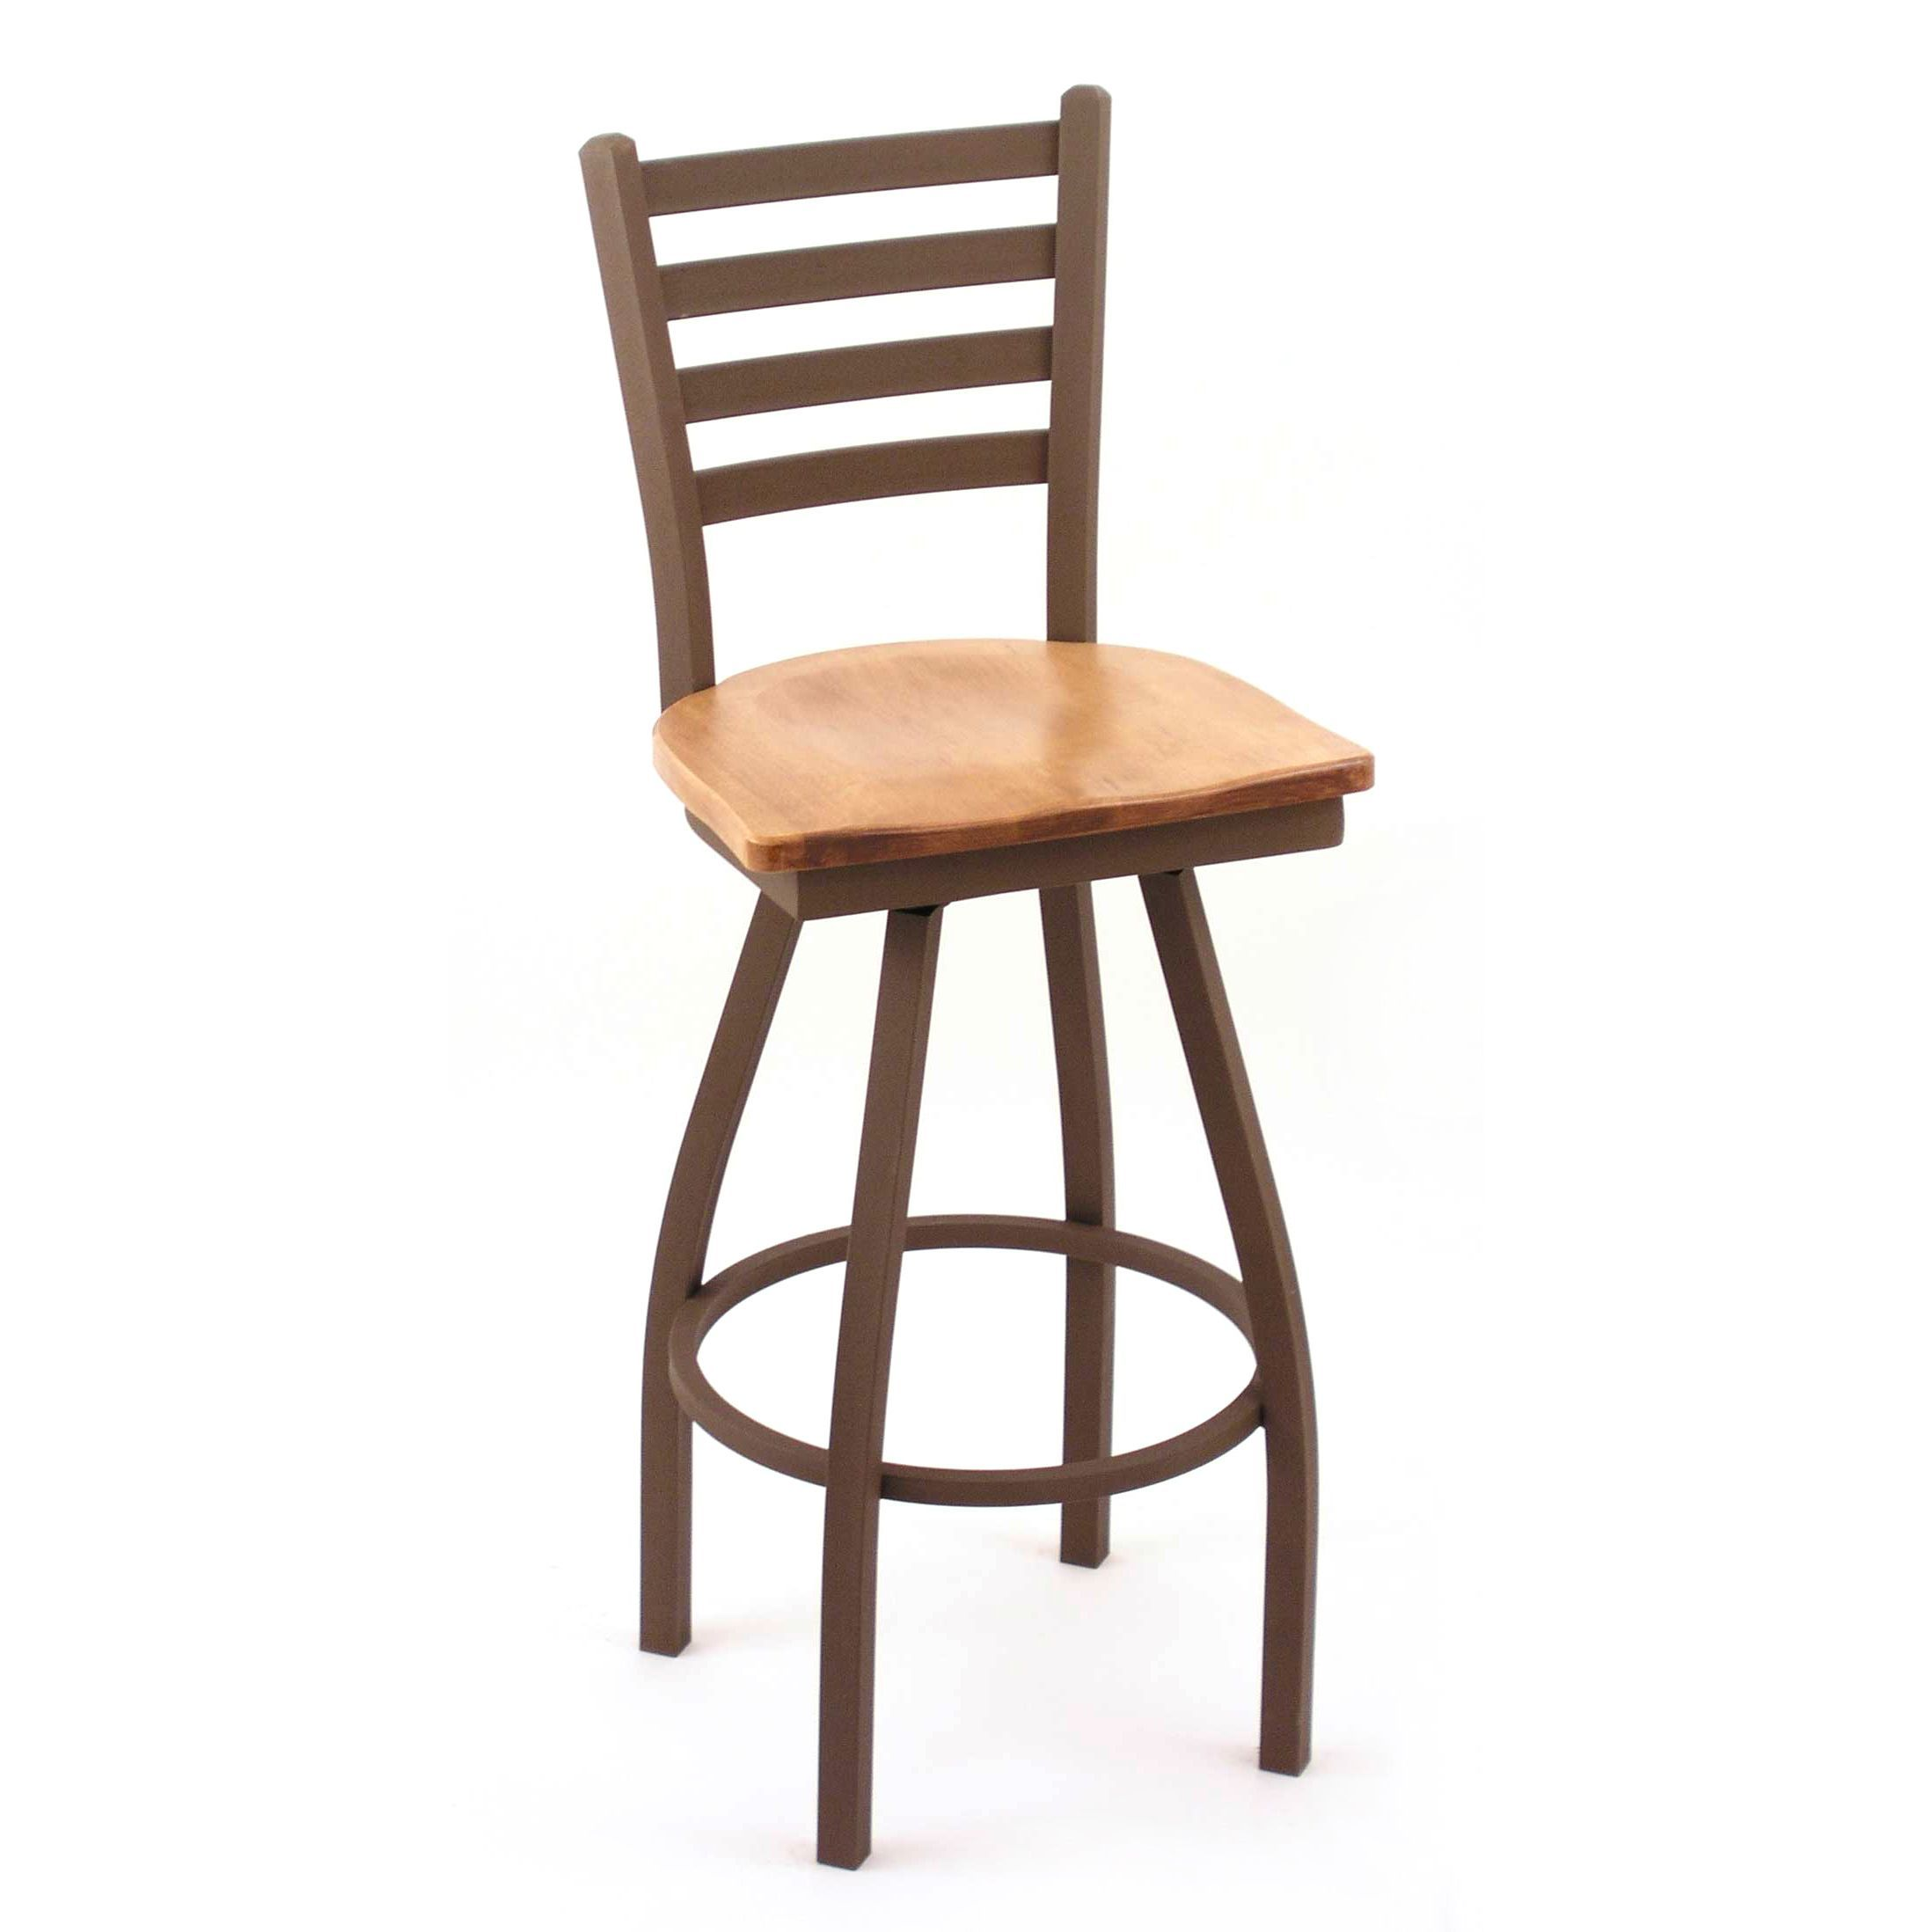 Strange Cambridge 36 Inch Maple Horizontal Slat Back Bar Stool Gmtry Best Dining Table And Chair Ideas Images Gmtryco